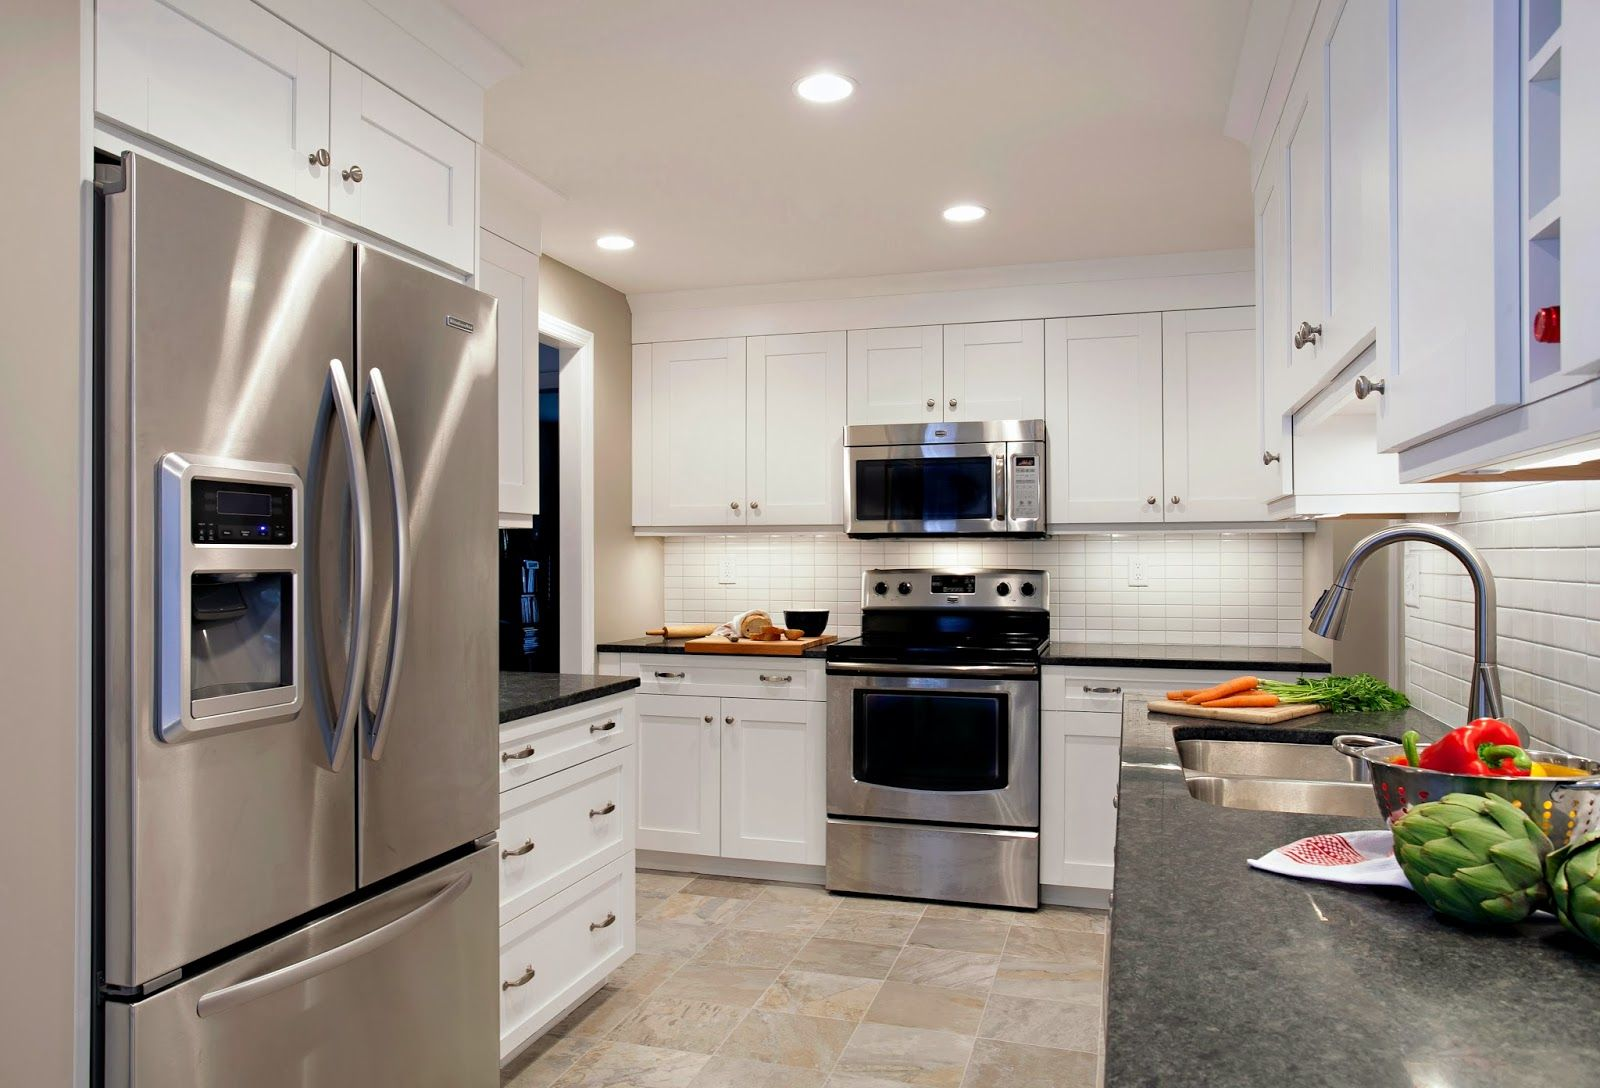 White Cabinets Kitchen Tile Floor Gray Kitchen White Cabinets With Granite Countertops  Top